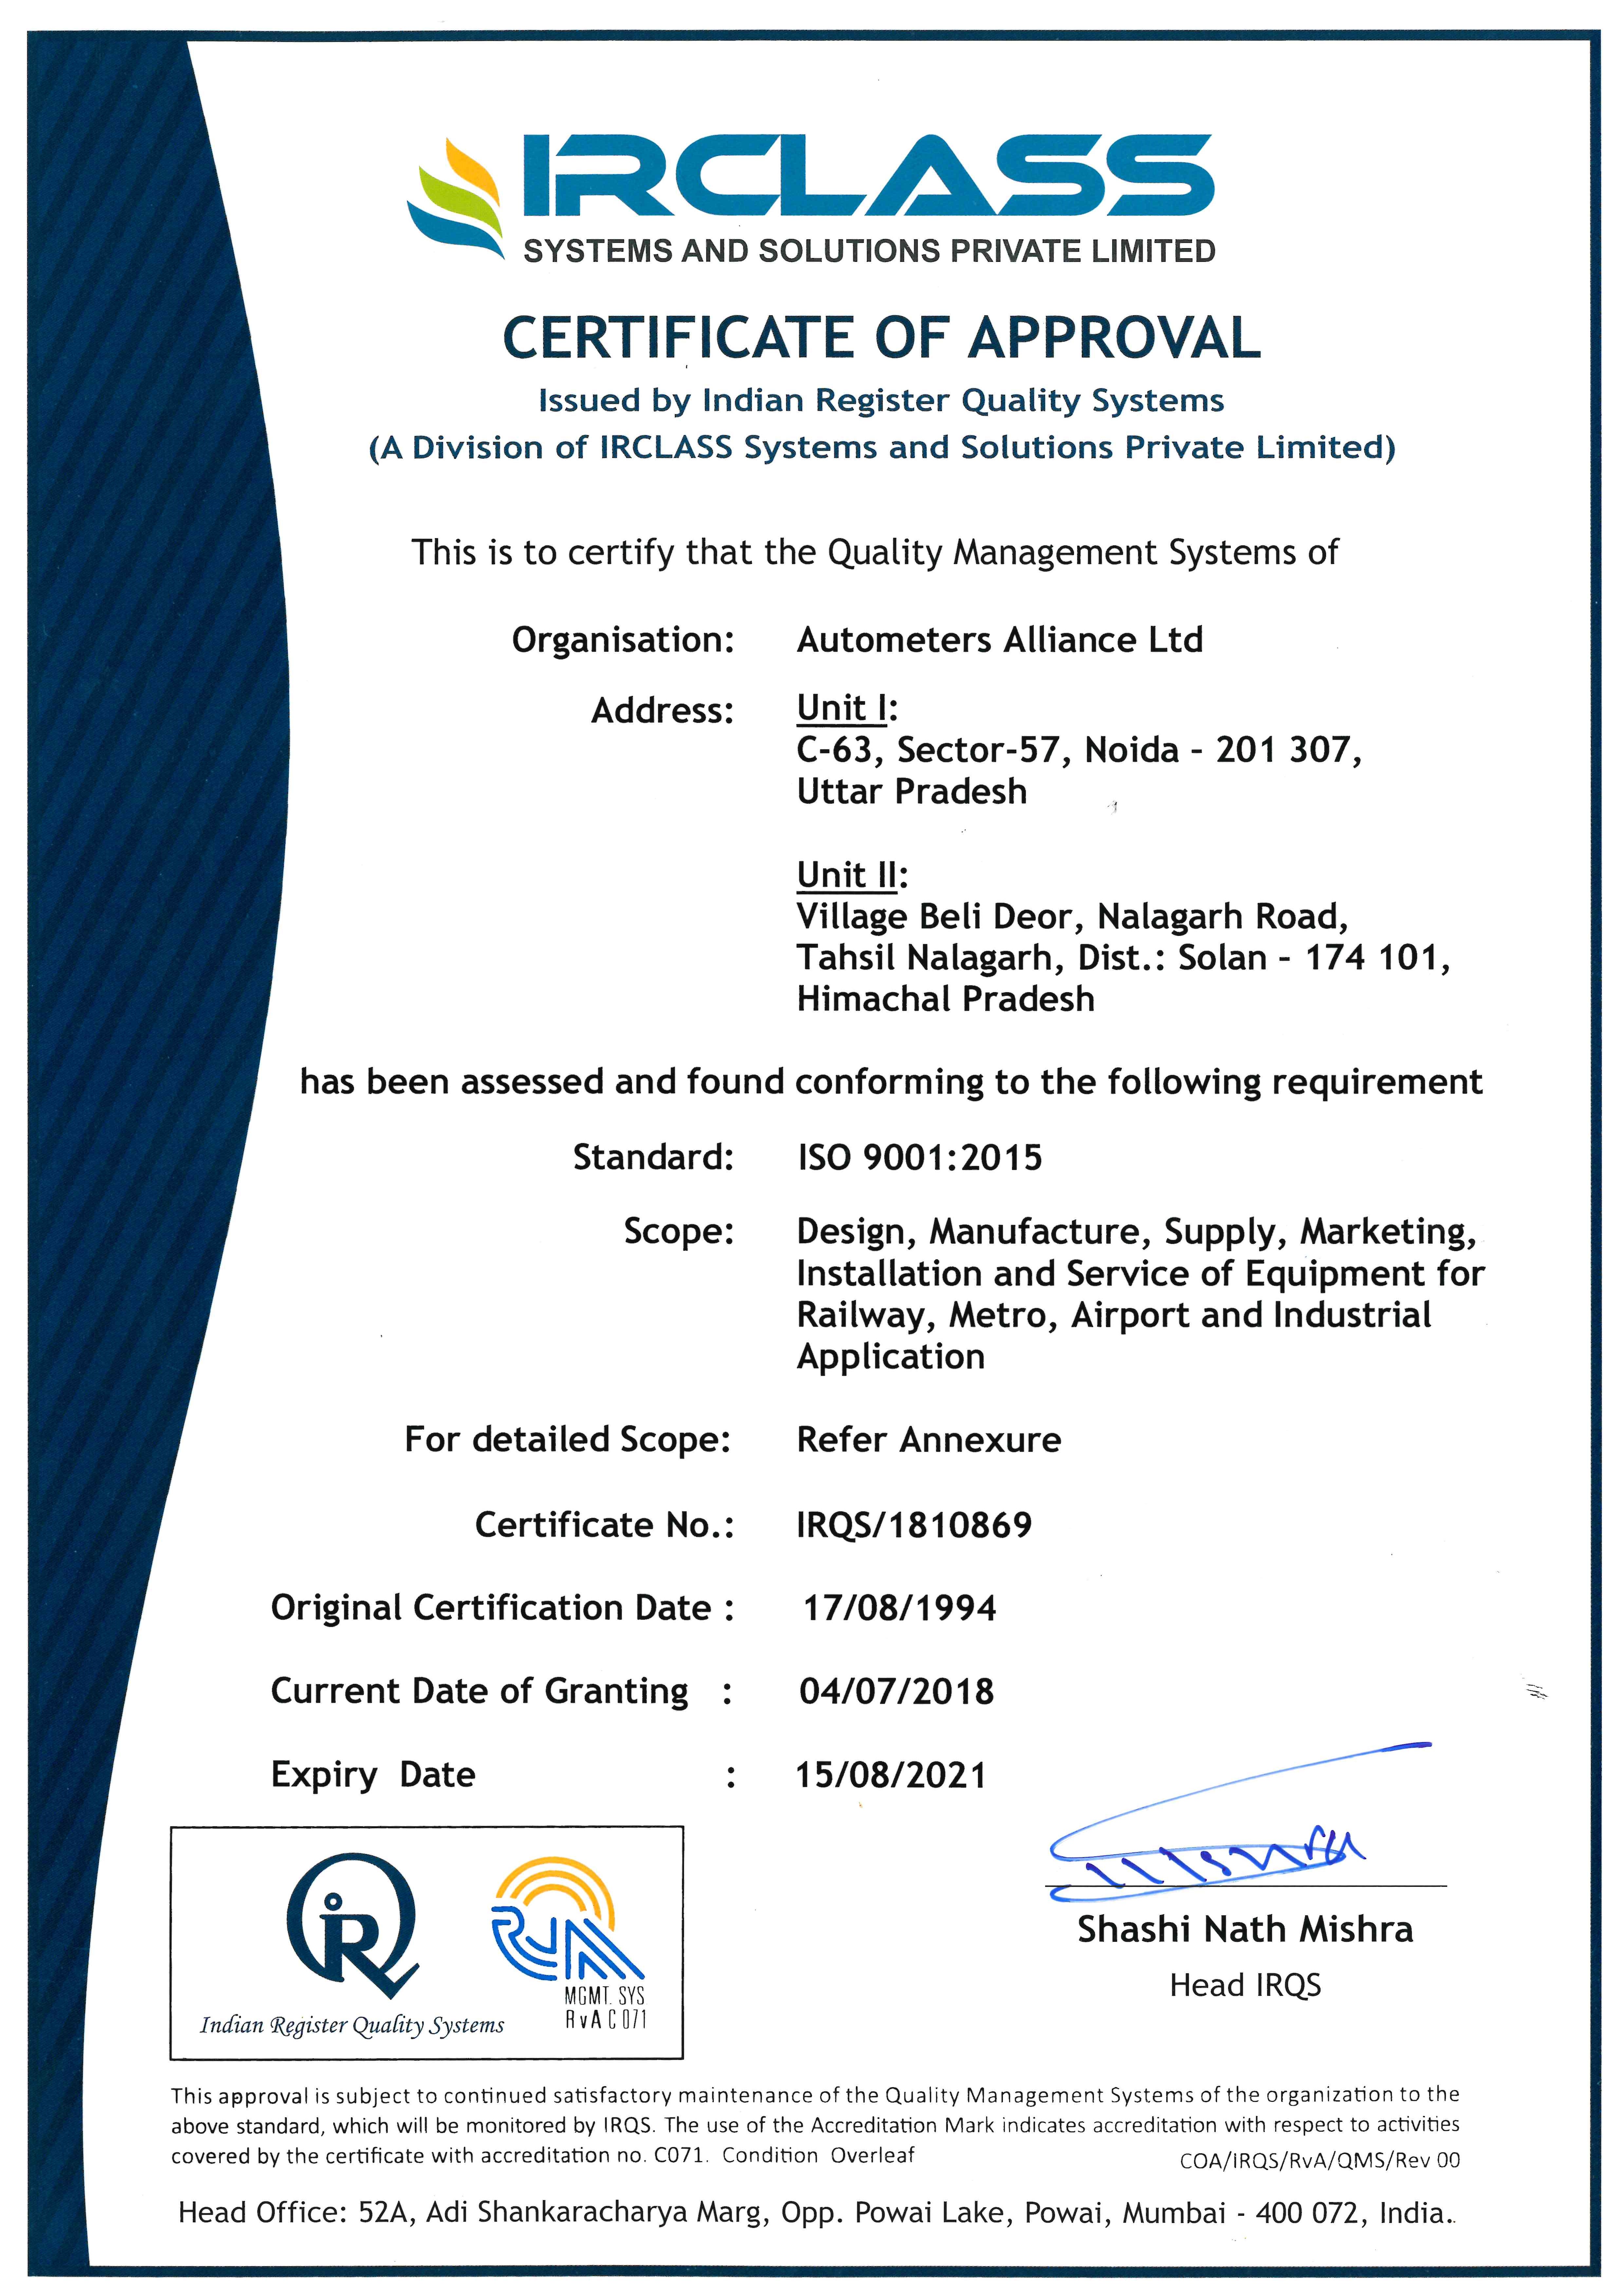 Autometers Alliance Ltd, an ISO 9001 certified company ranks